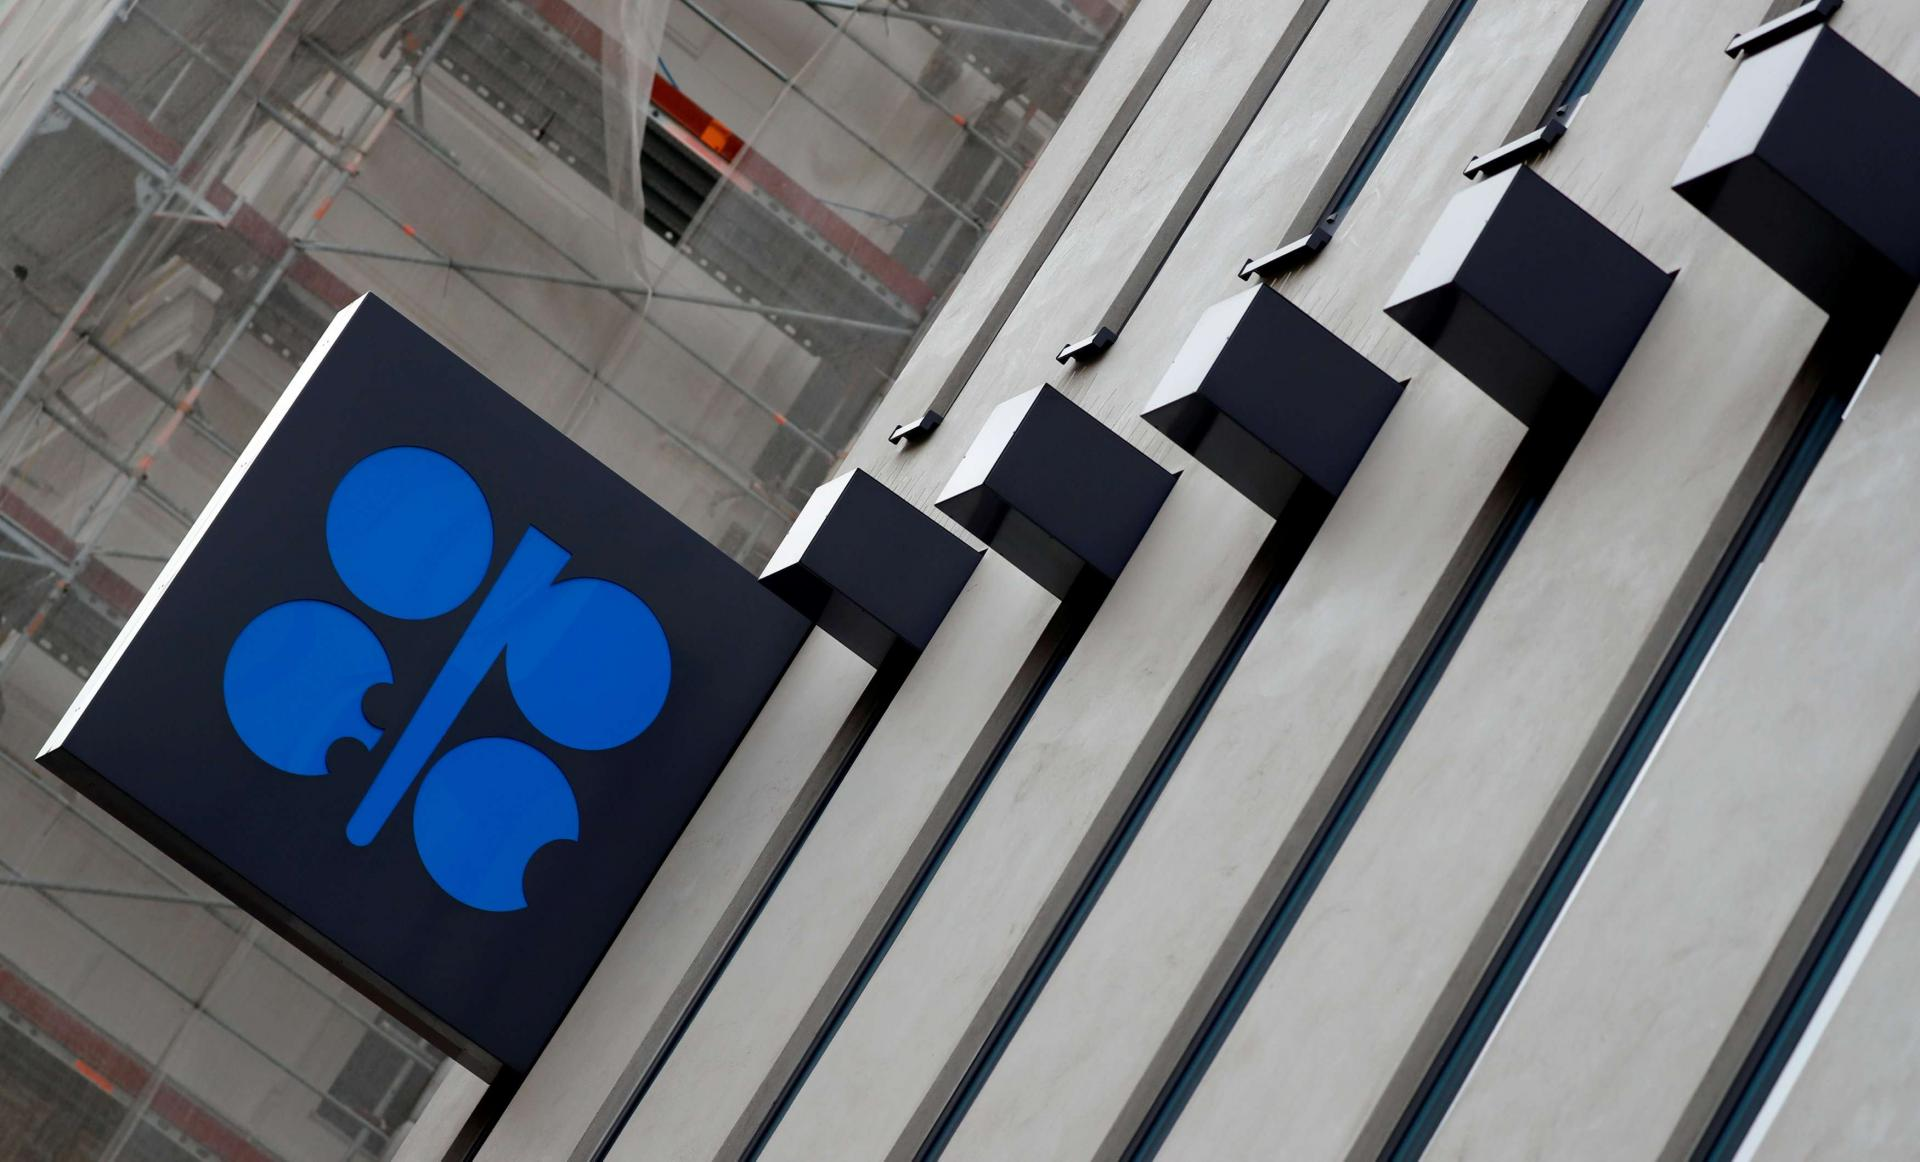 While remaining volatile, oil prices have rallied to just above $60 a barrel and jumped more than a dollar after the OPEC production update.